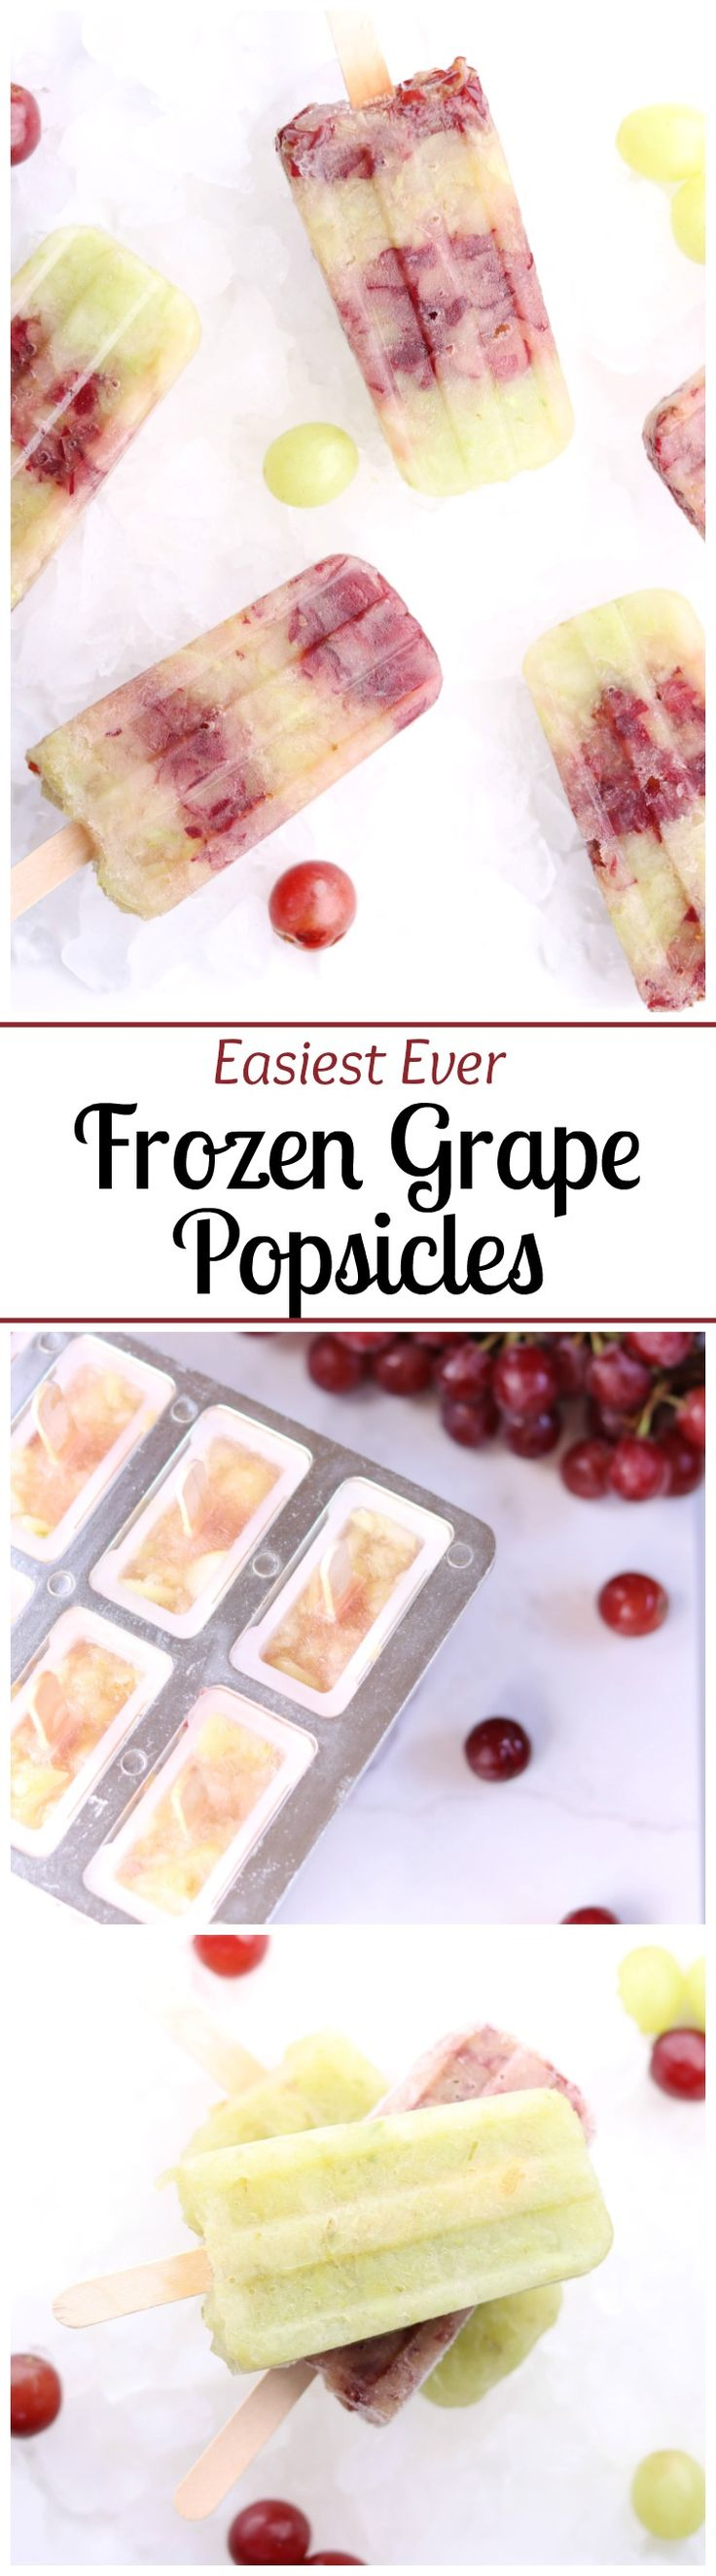 Frozen grapes are deliciously transformed into perfectly simple, amazingly…